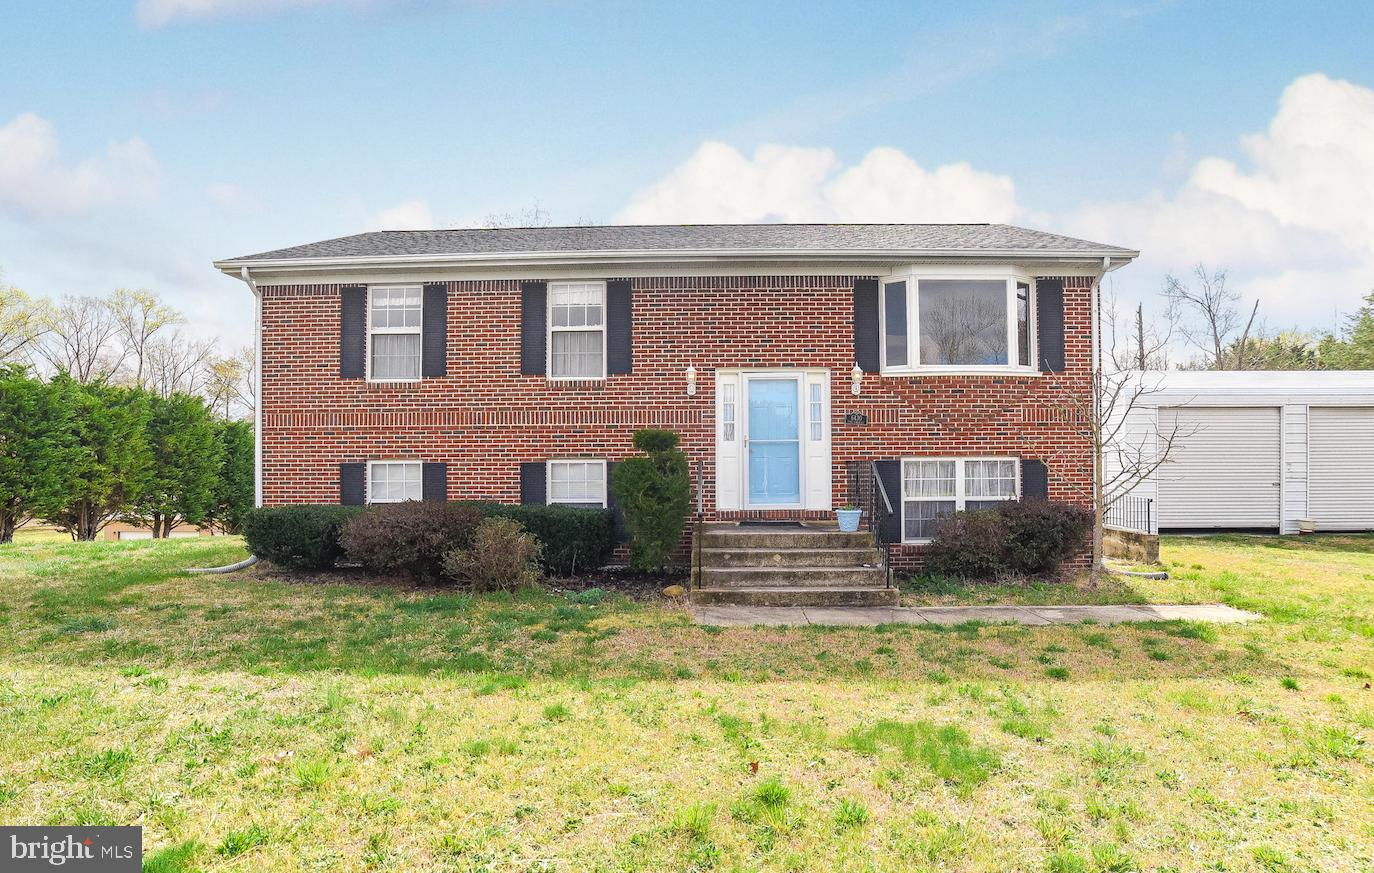 6430 FIRE TOWER ROAD, WELCOME, MD 20693